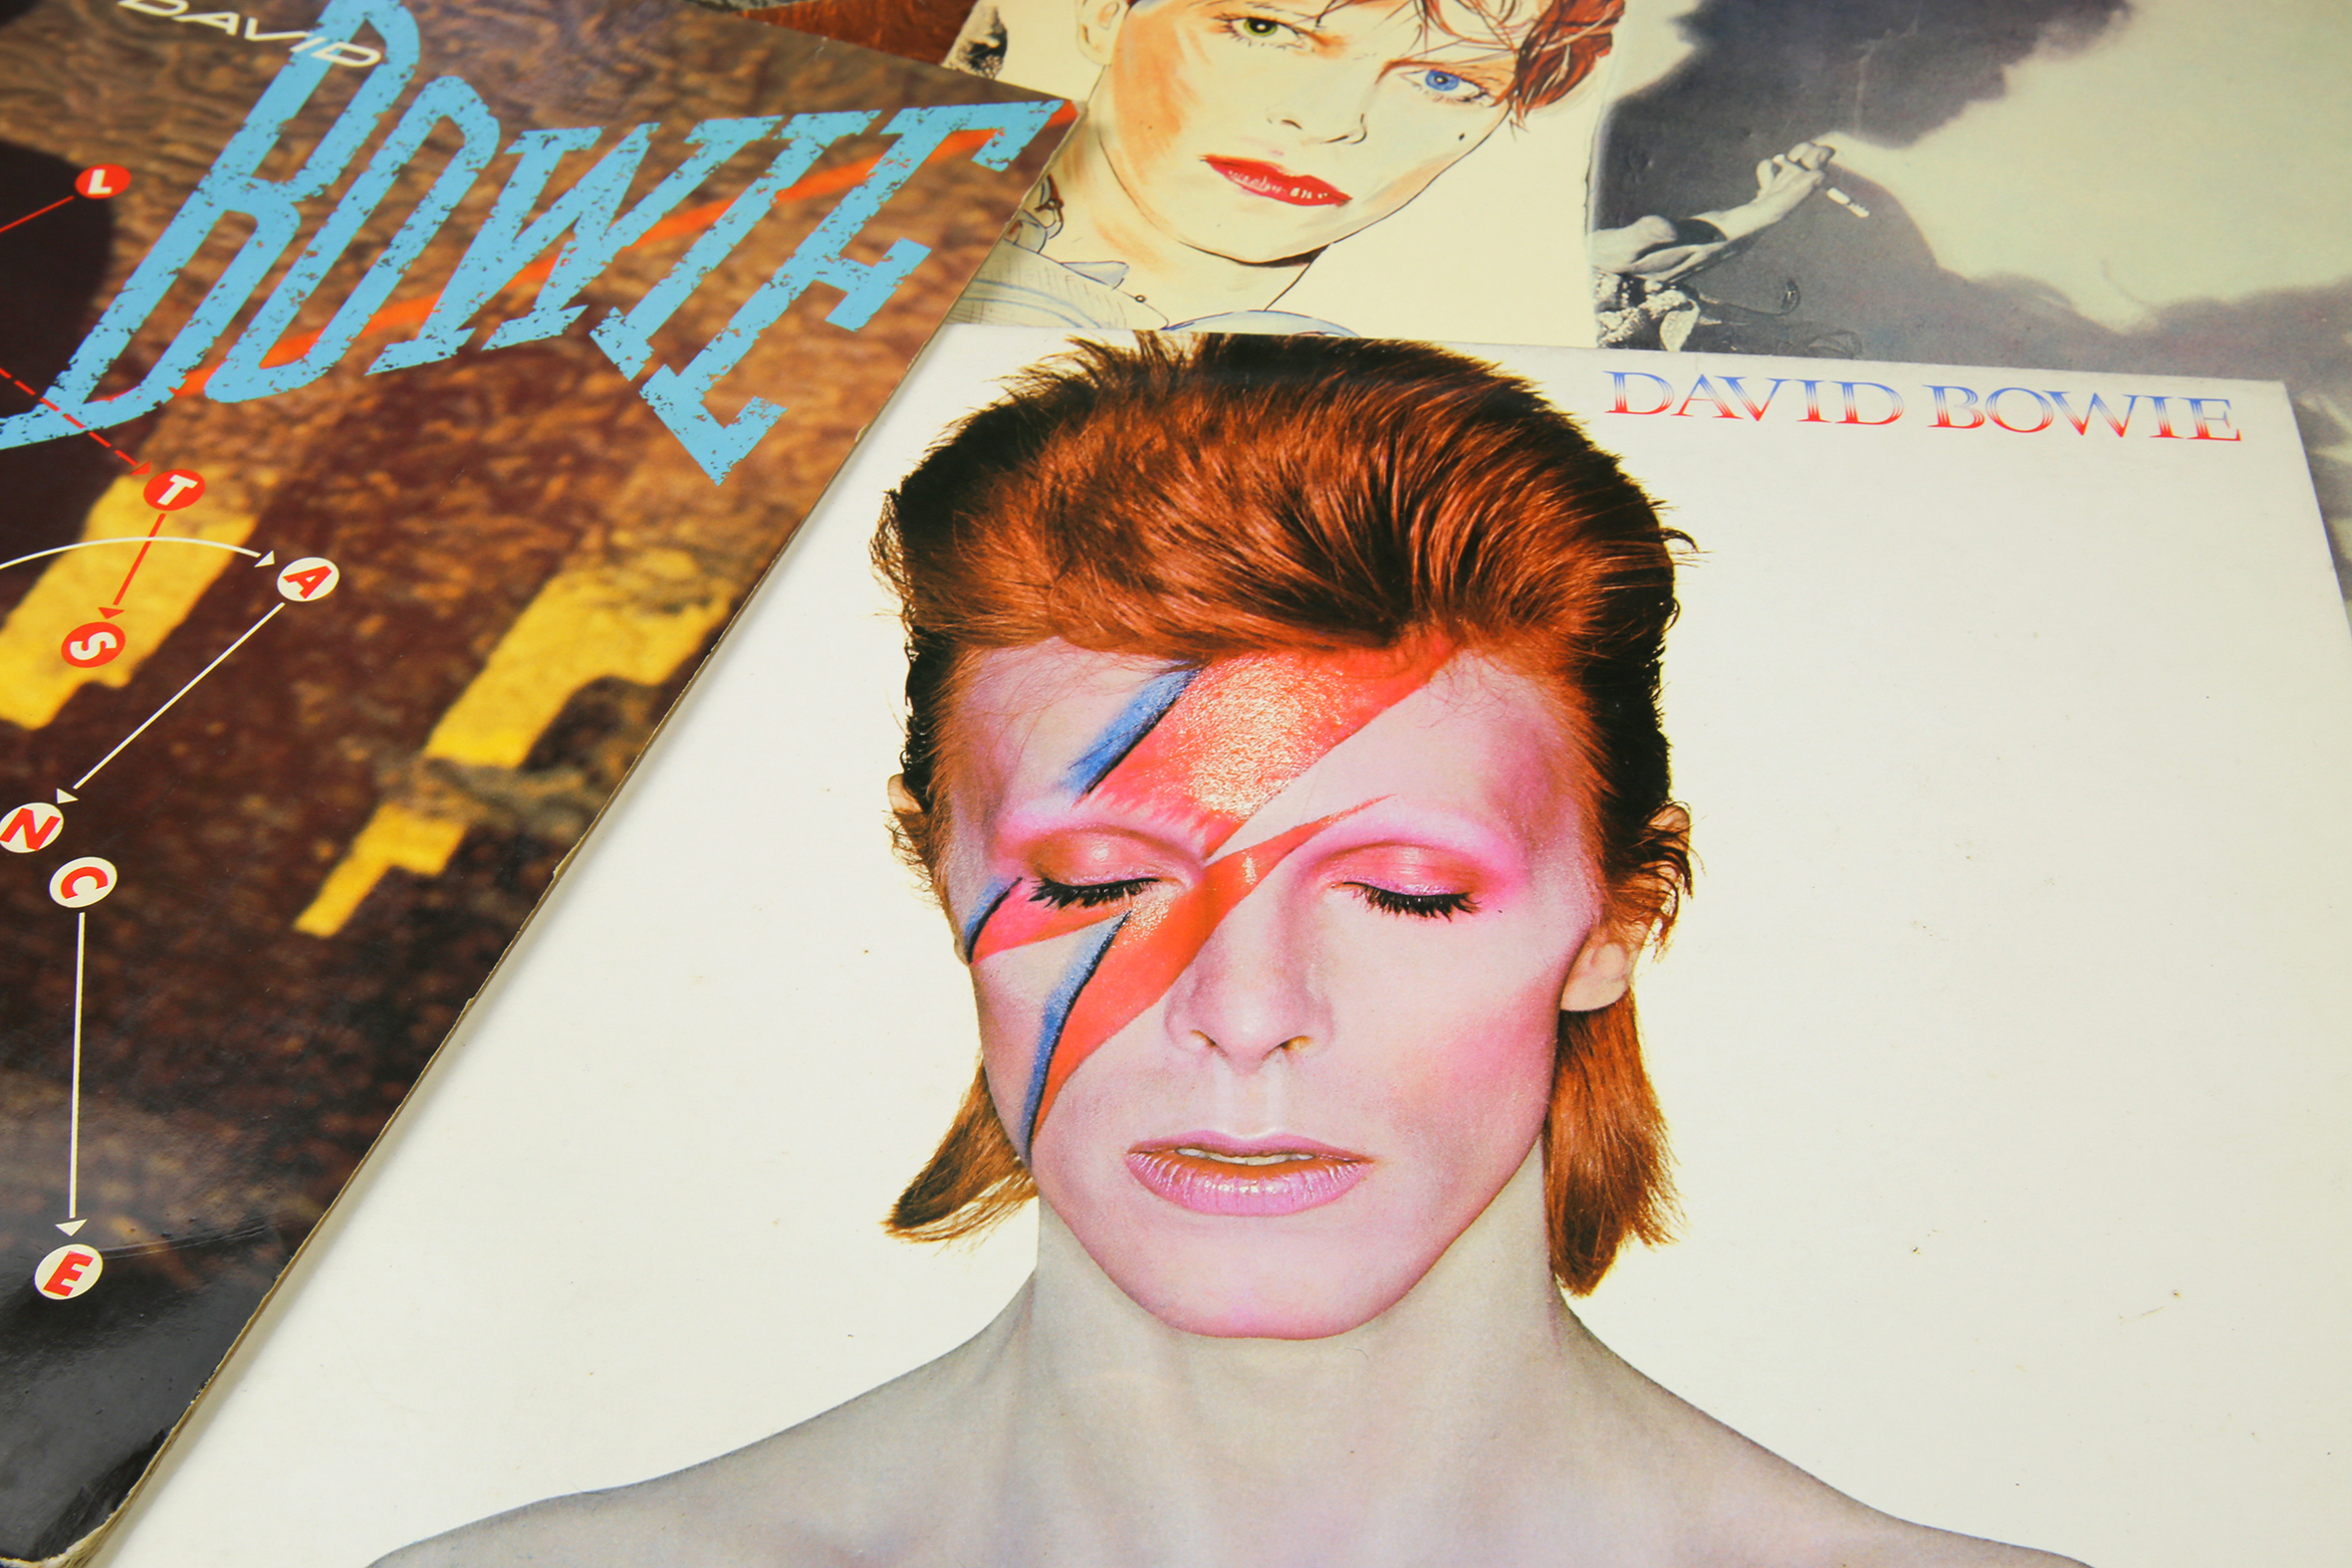 London's David Bowie pop-up shop has opened